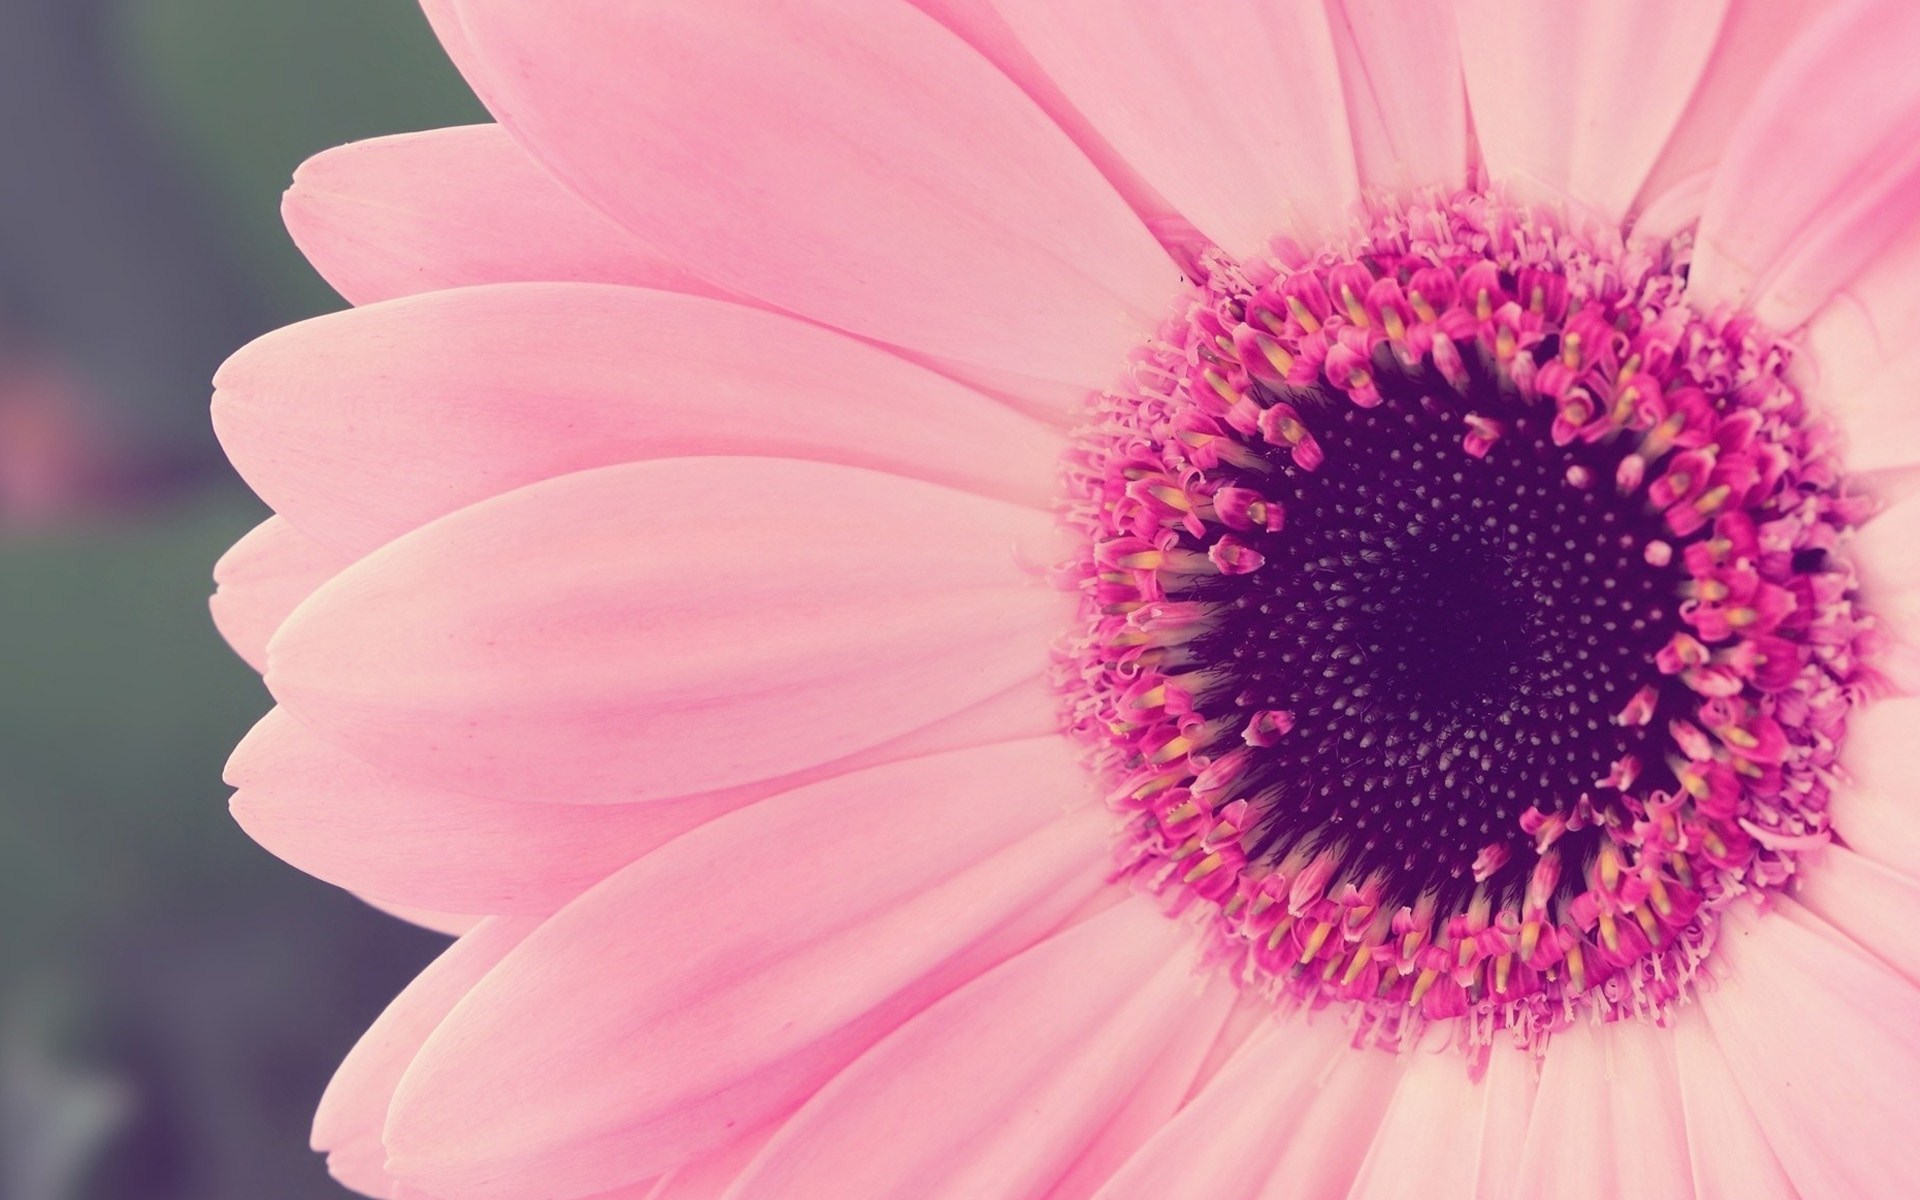 daisy pictures 1920x1080p